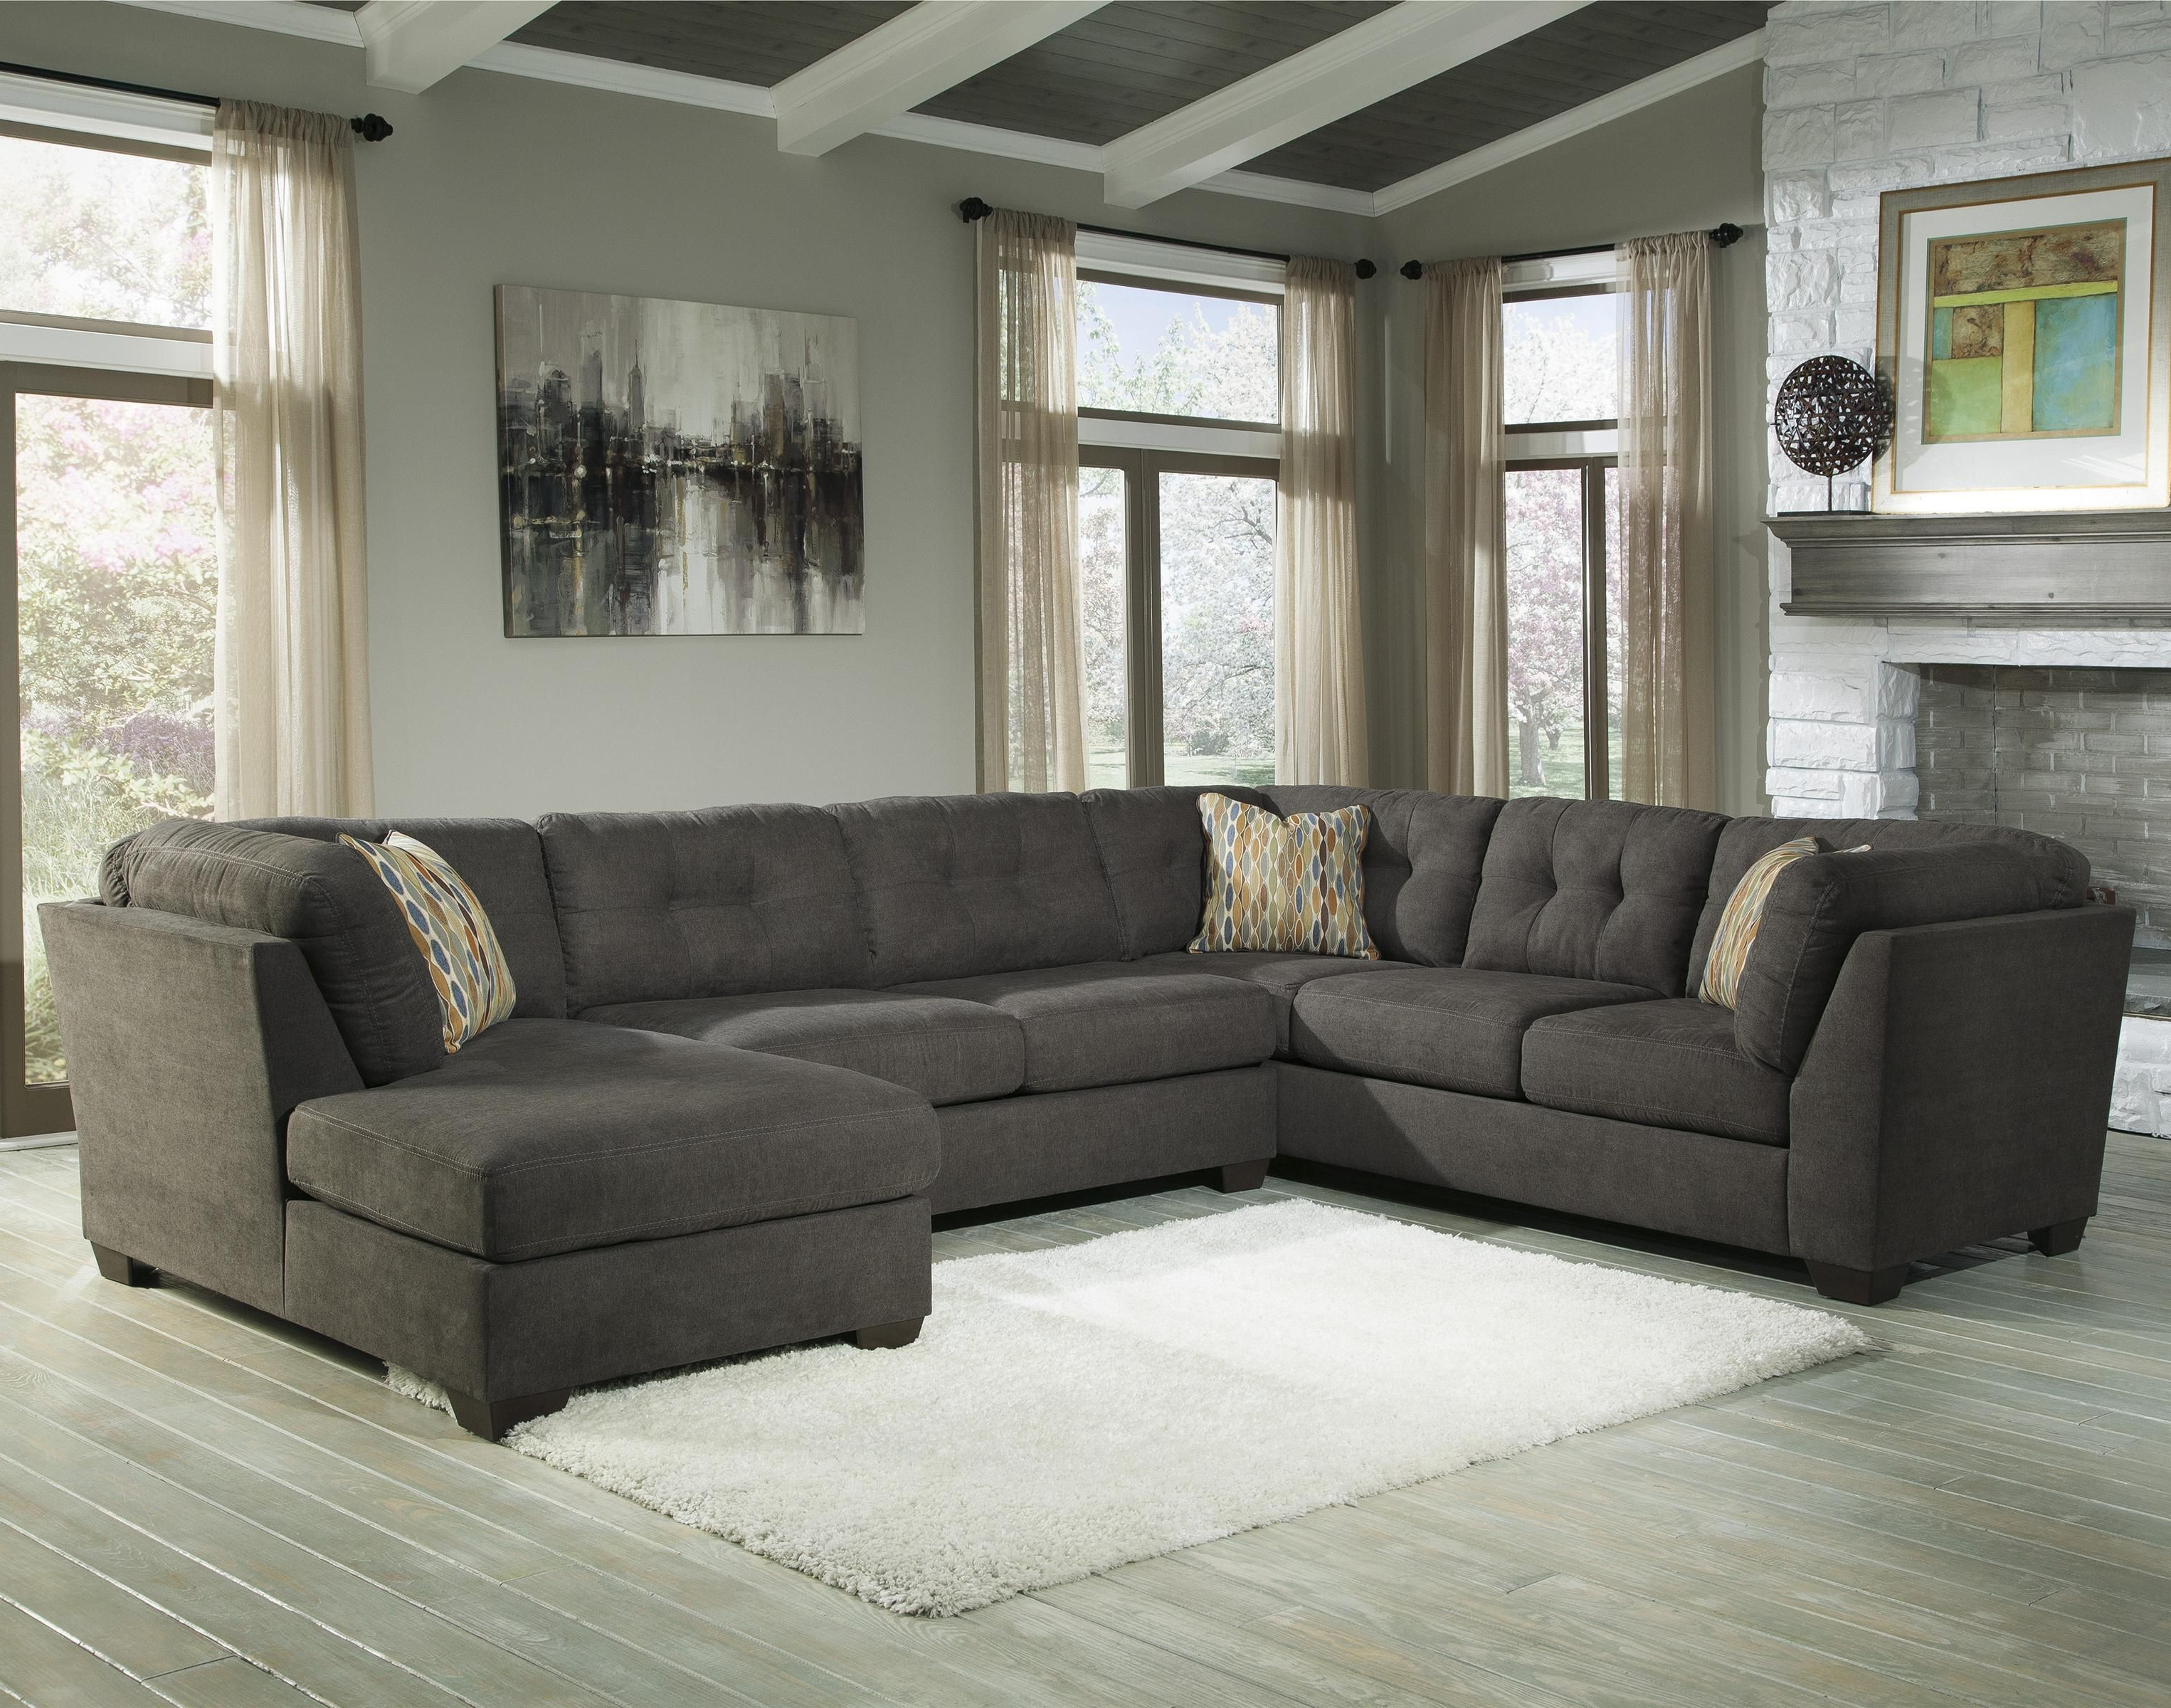 Lucy Grey 2 Piece Sleeper Sectionals With Raf Chaise In Famous 3 Piece Sectional Sleeper Sofa Design Inspiration – Designing An (Gallery 20 of 20)